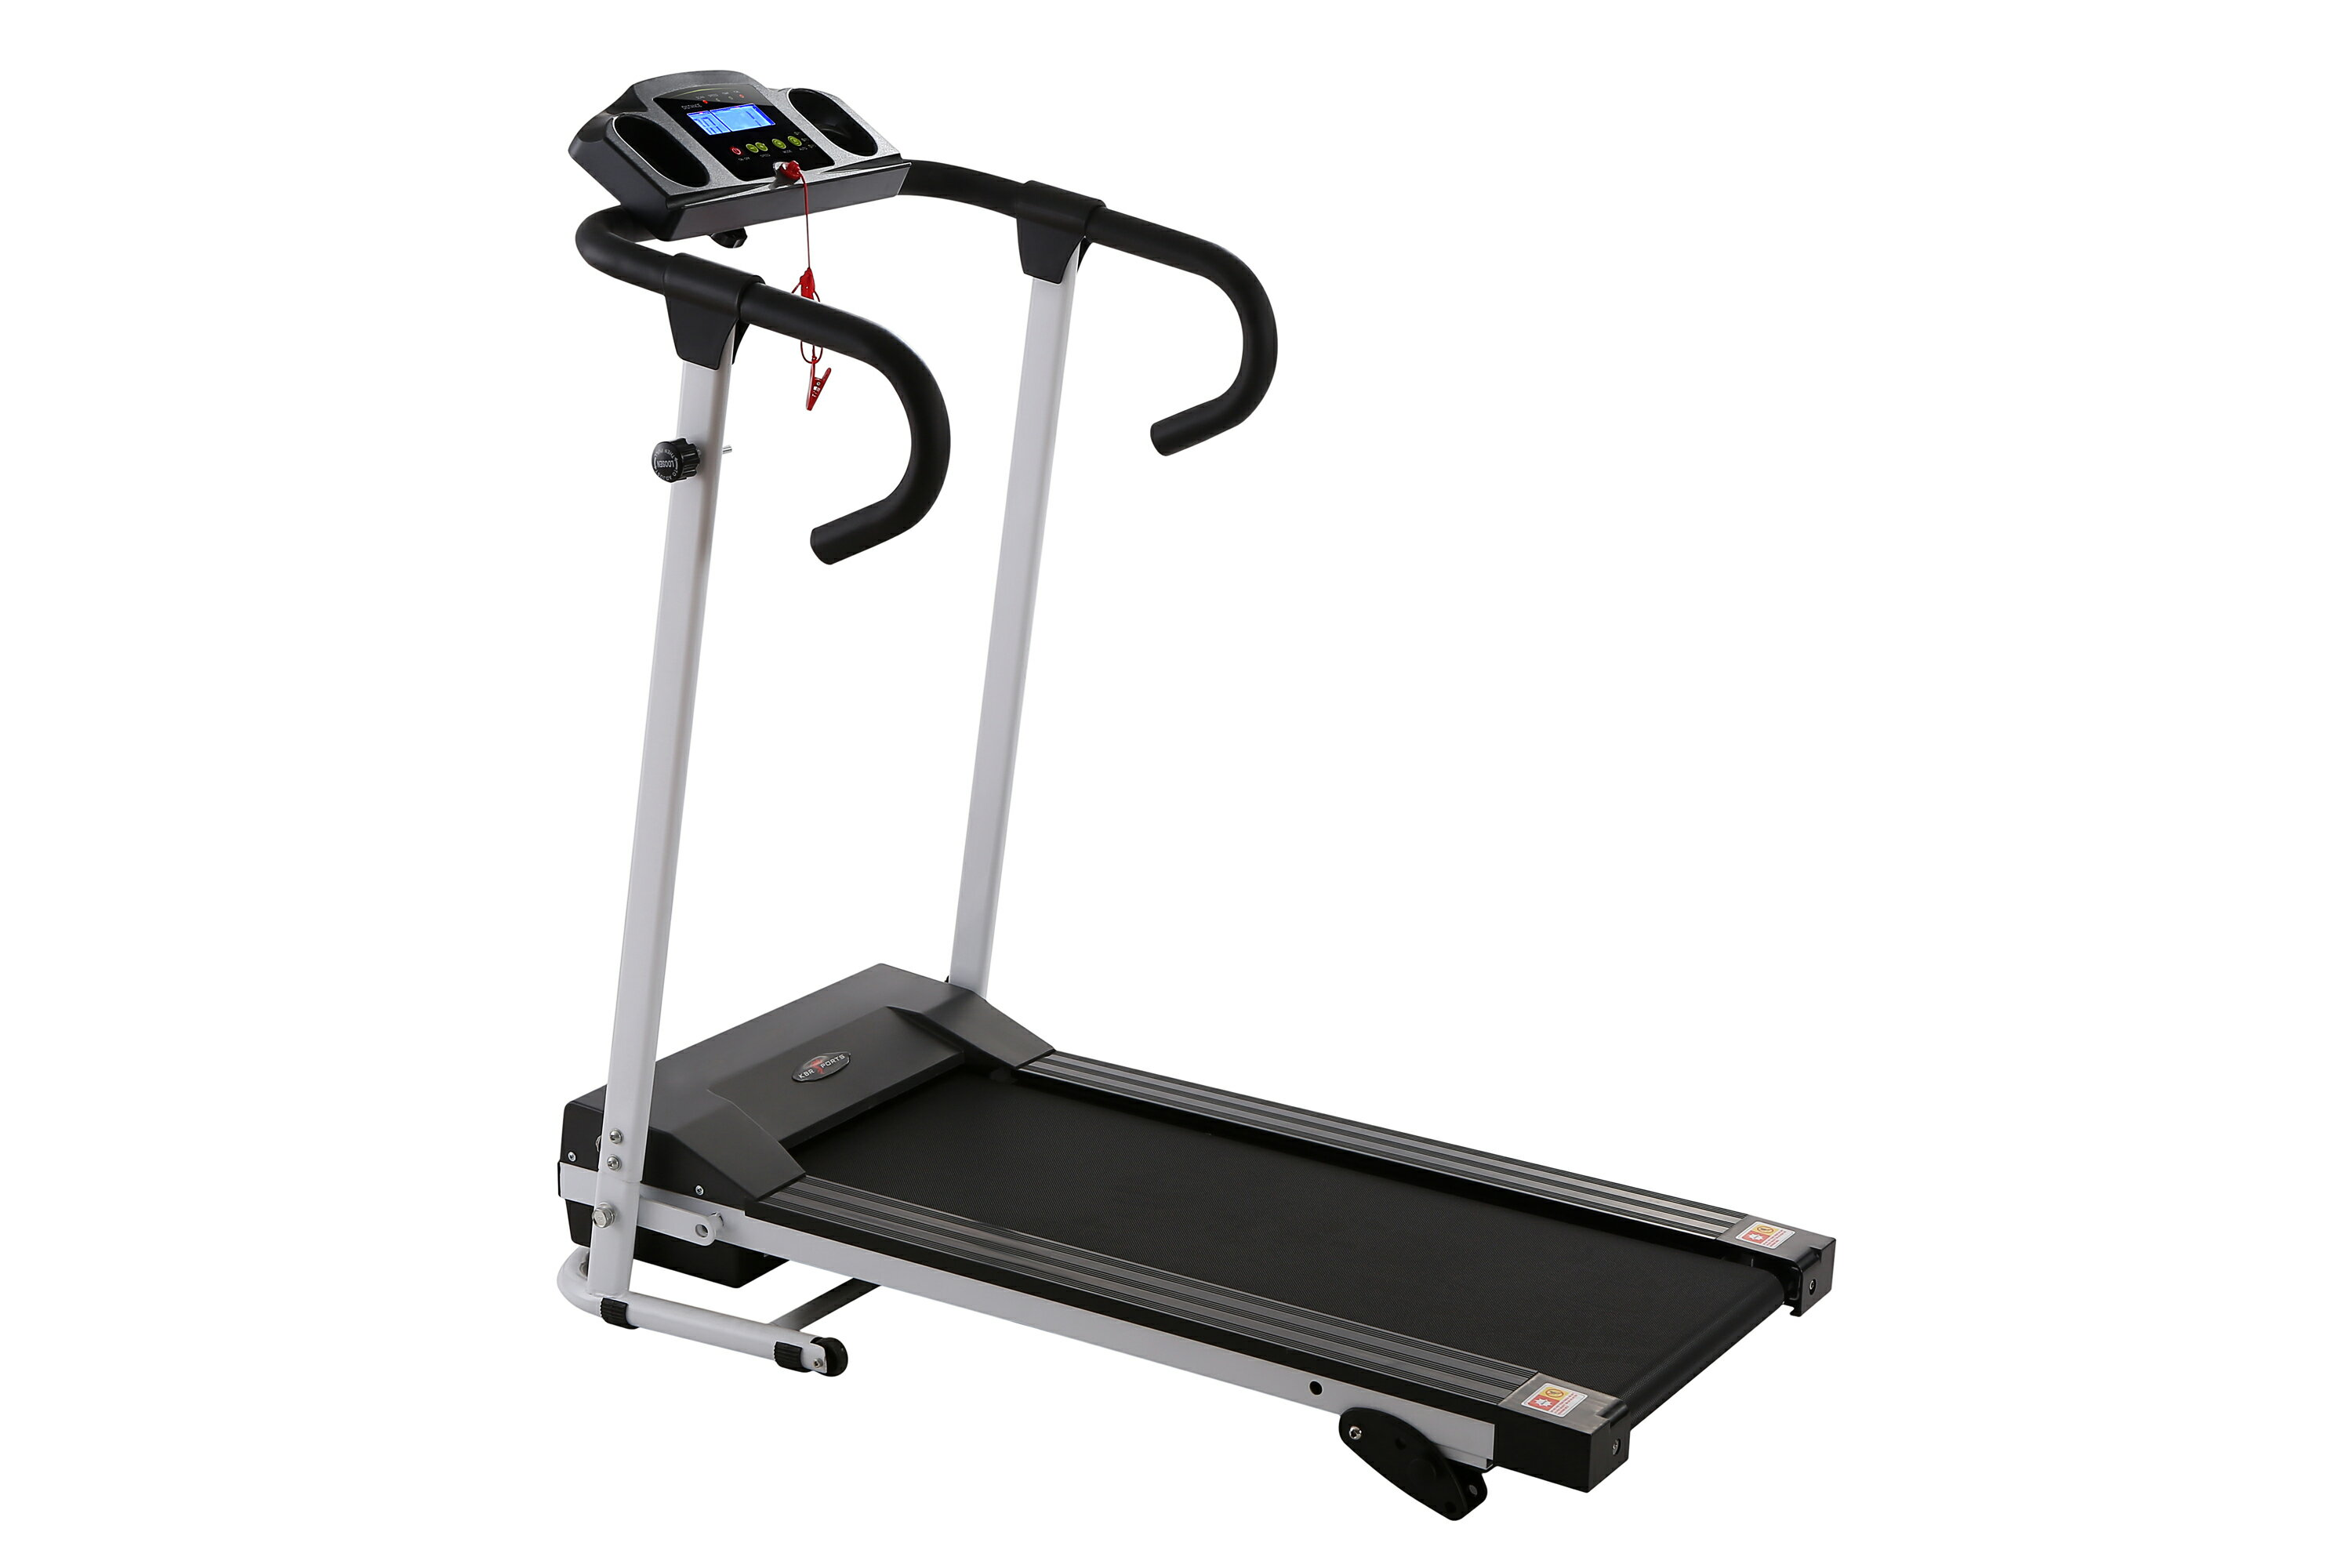 ExacMe 500W Folding Electric Motorized Treadmill Running Jogging Gym Power Machine 0108 0